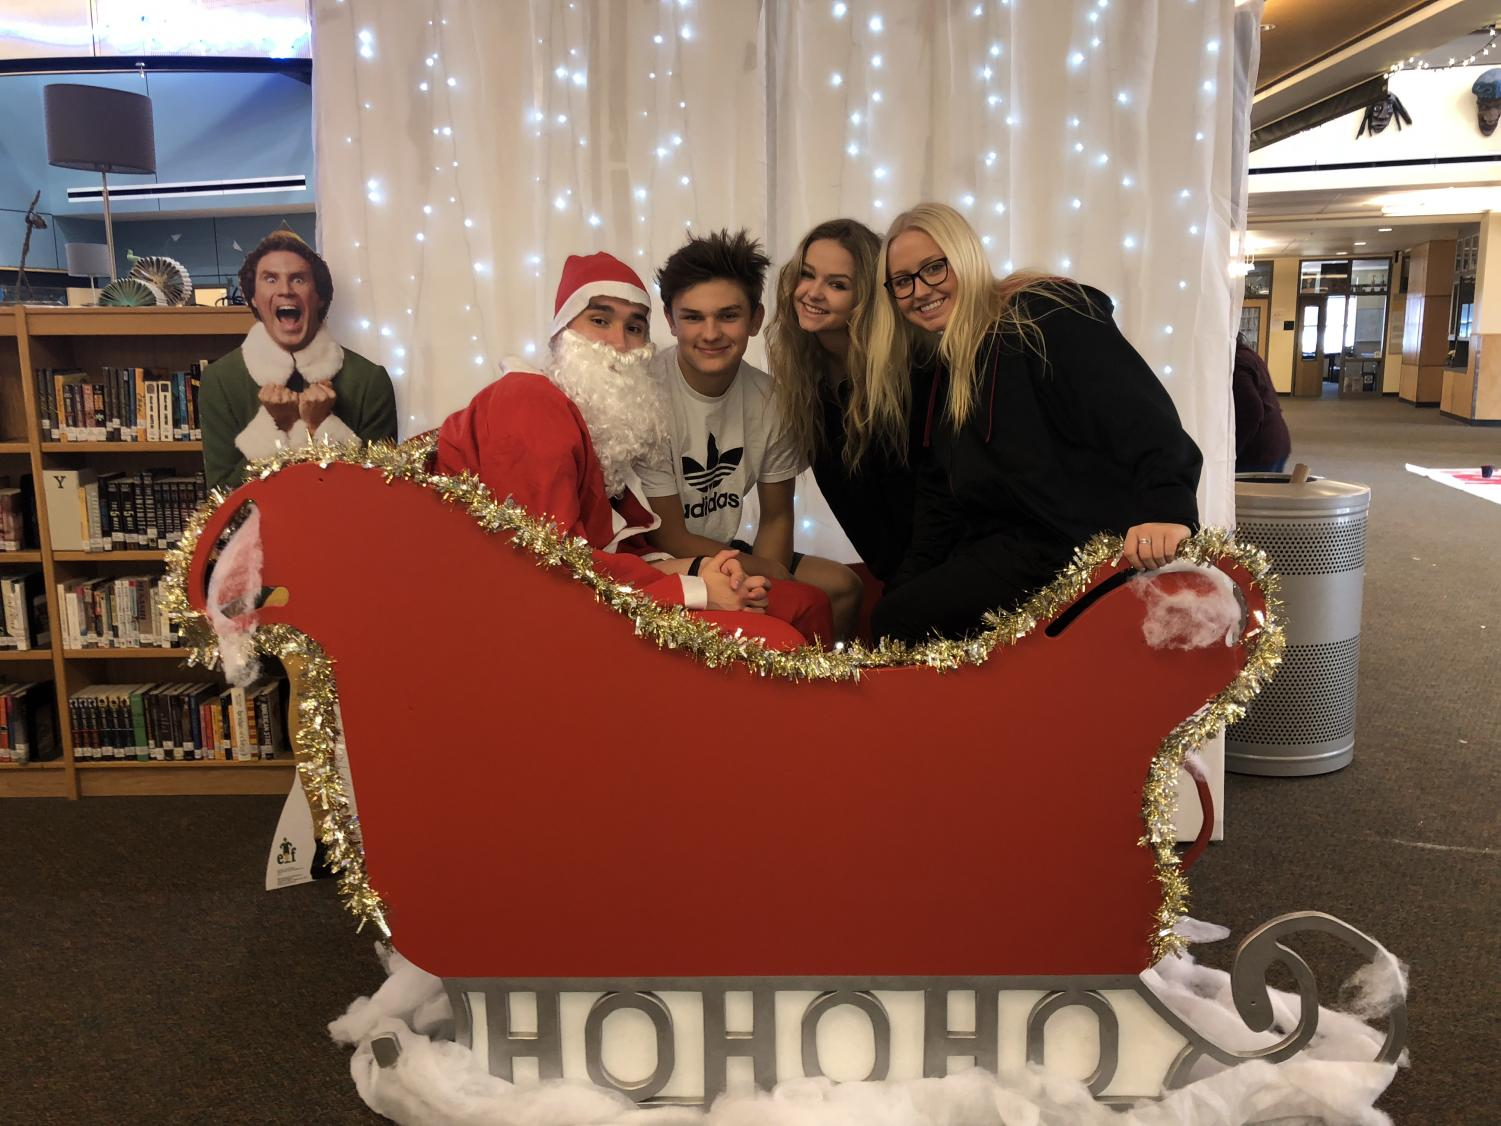 Students Chris Grizzell, Hunter Napoli, Jessica Caulk, and Mckina Stalheim pose in the custom sleigh made for the Wildcat Photo Booth. Students can take pictures in the sleigh up until Winter Break.